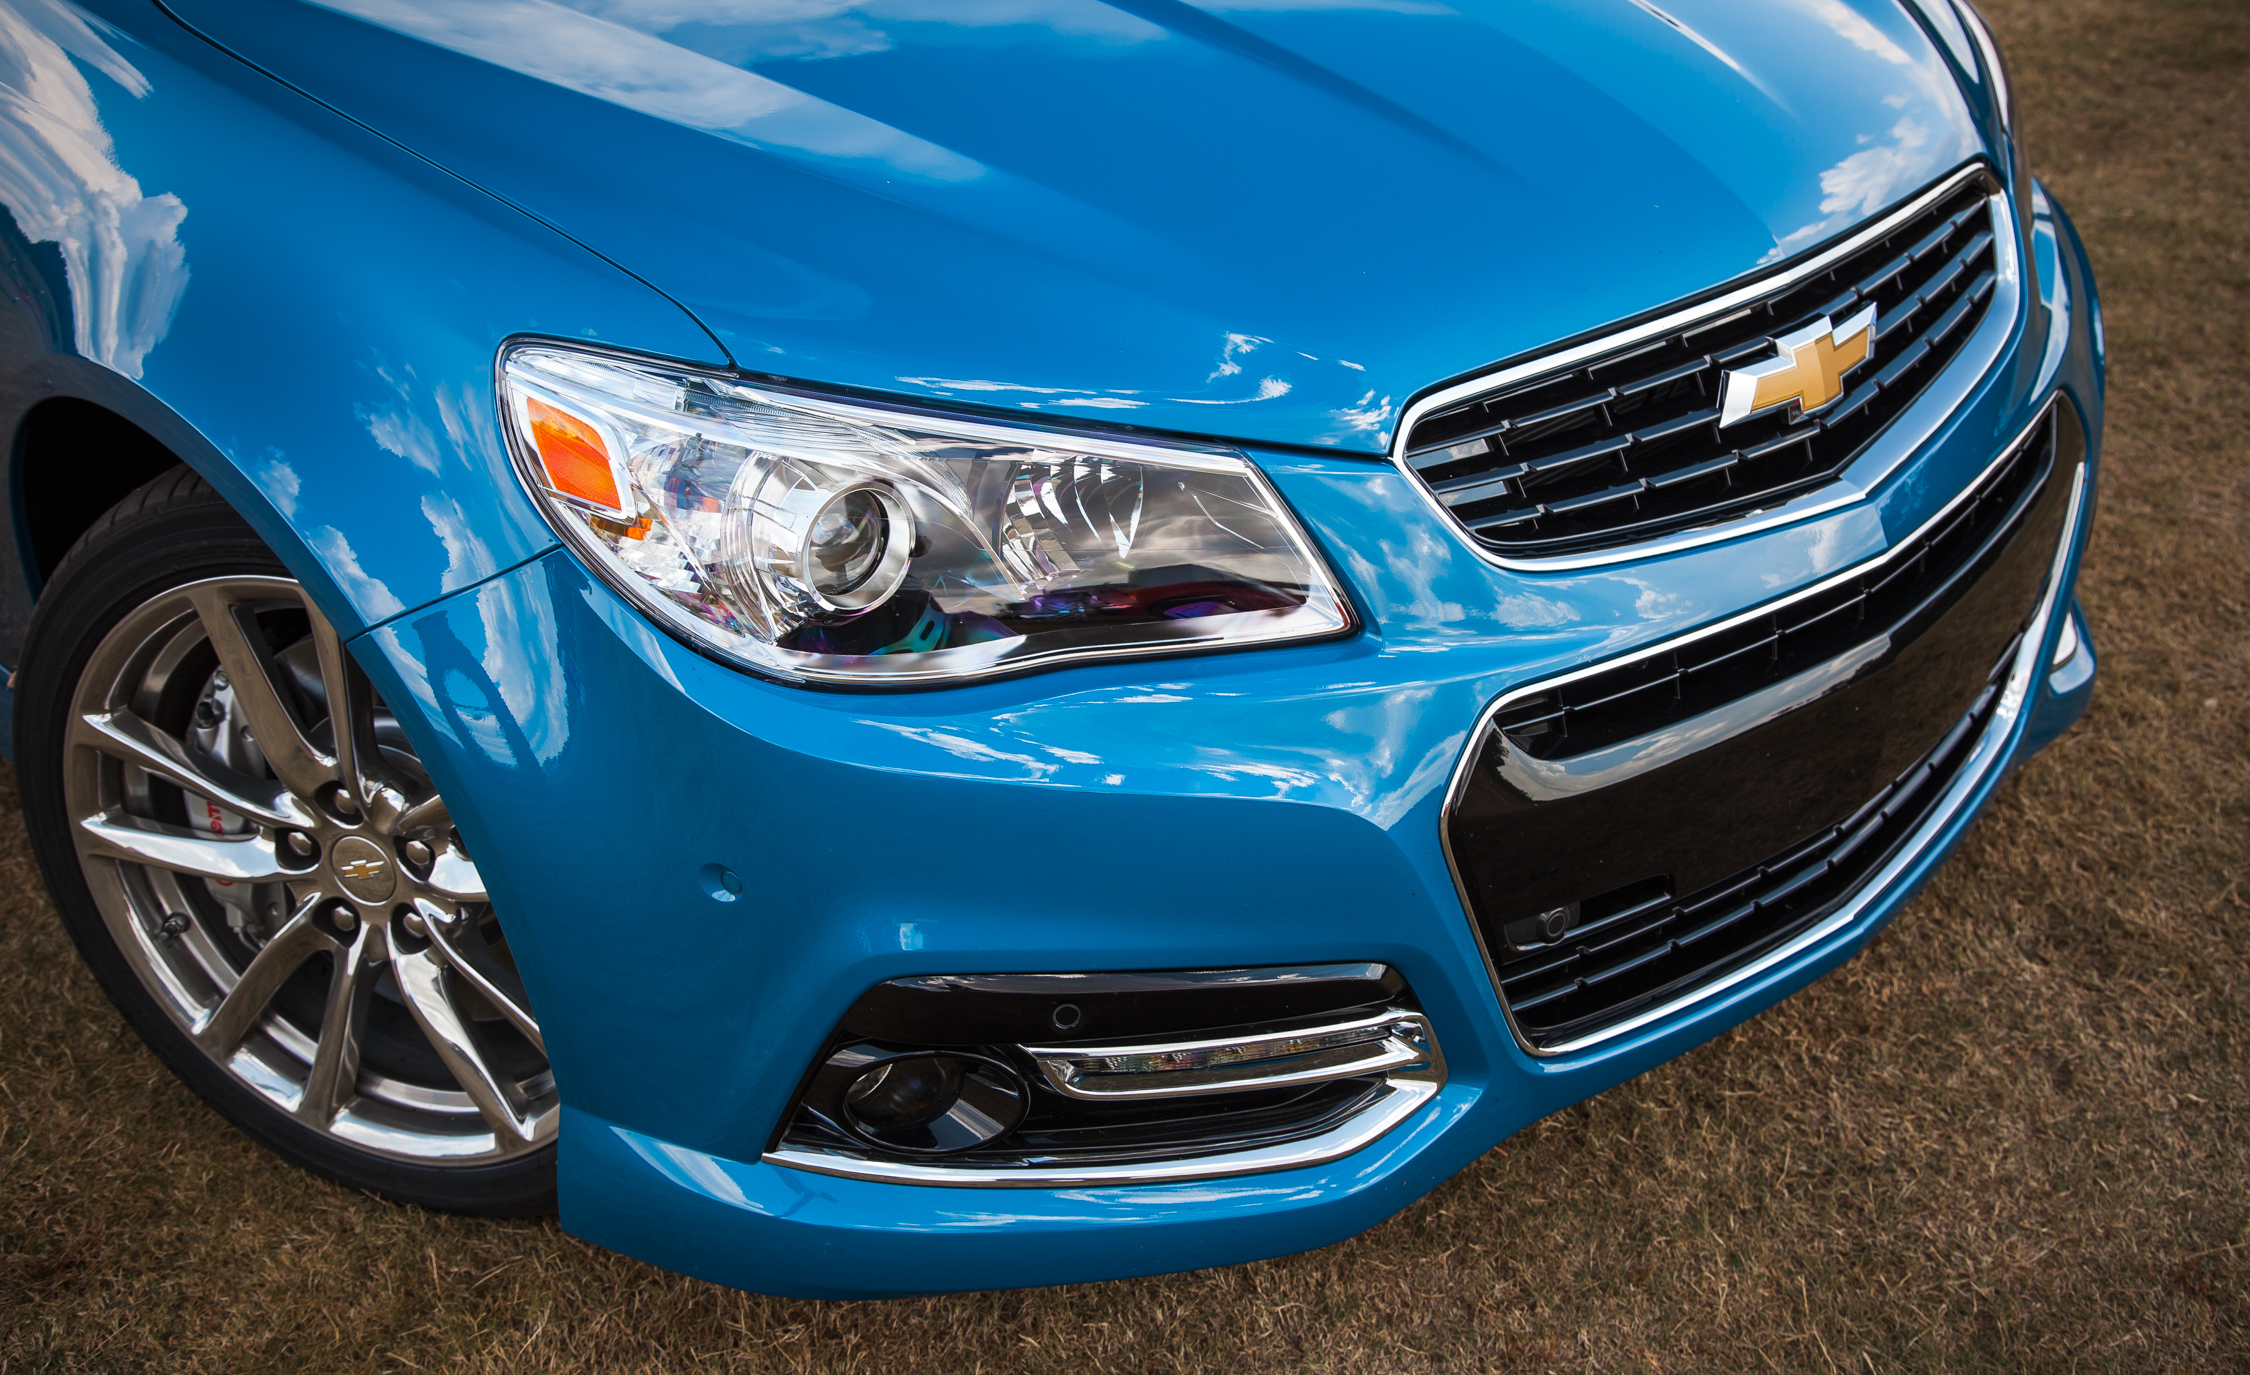 2015 Chevrolet SS Exterior Headlight